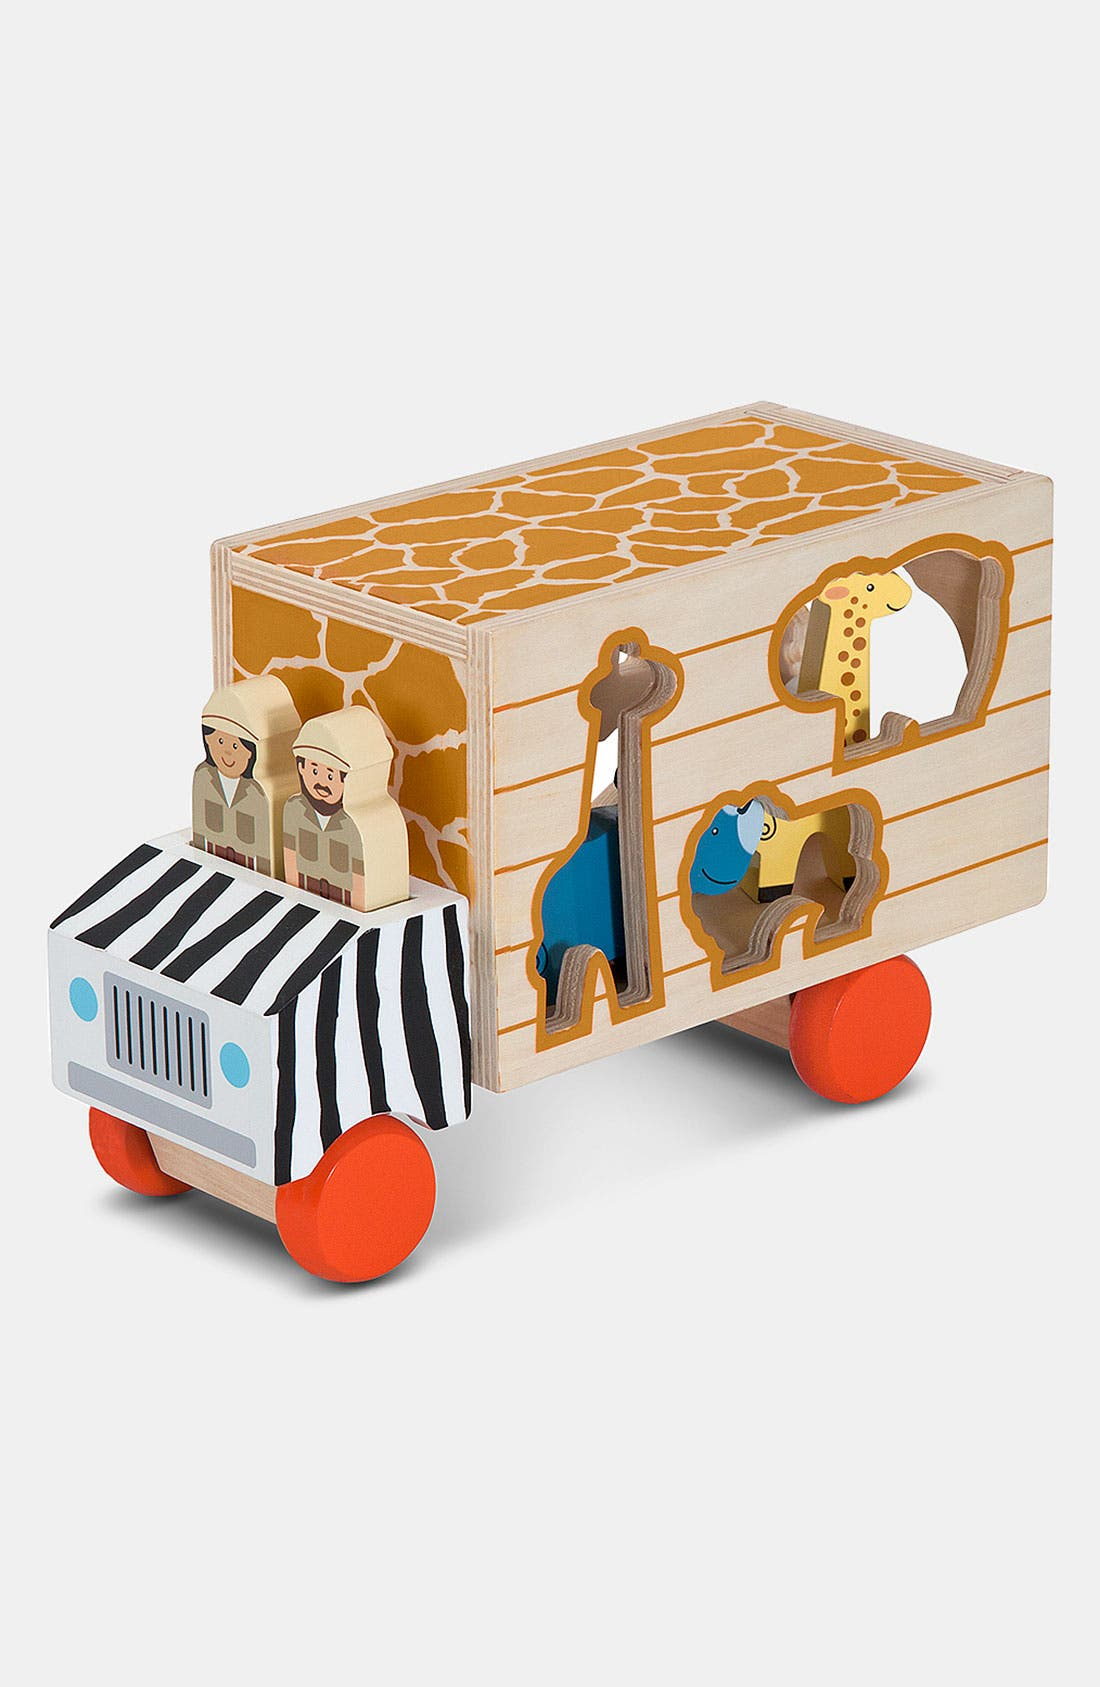 'Animal Rescue' Shape Sorting Wooden Truck Toy,                         Main,                         color, BROWN